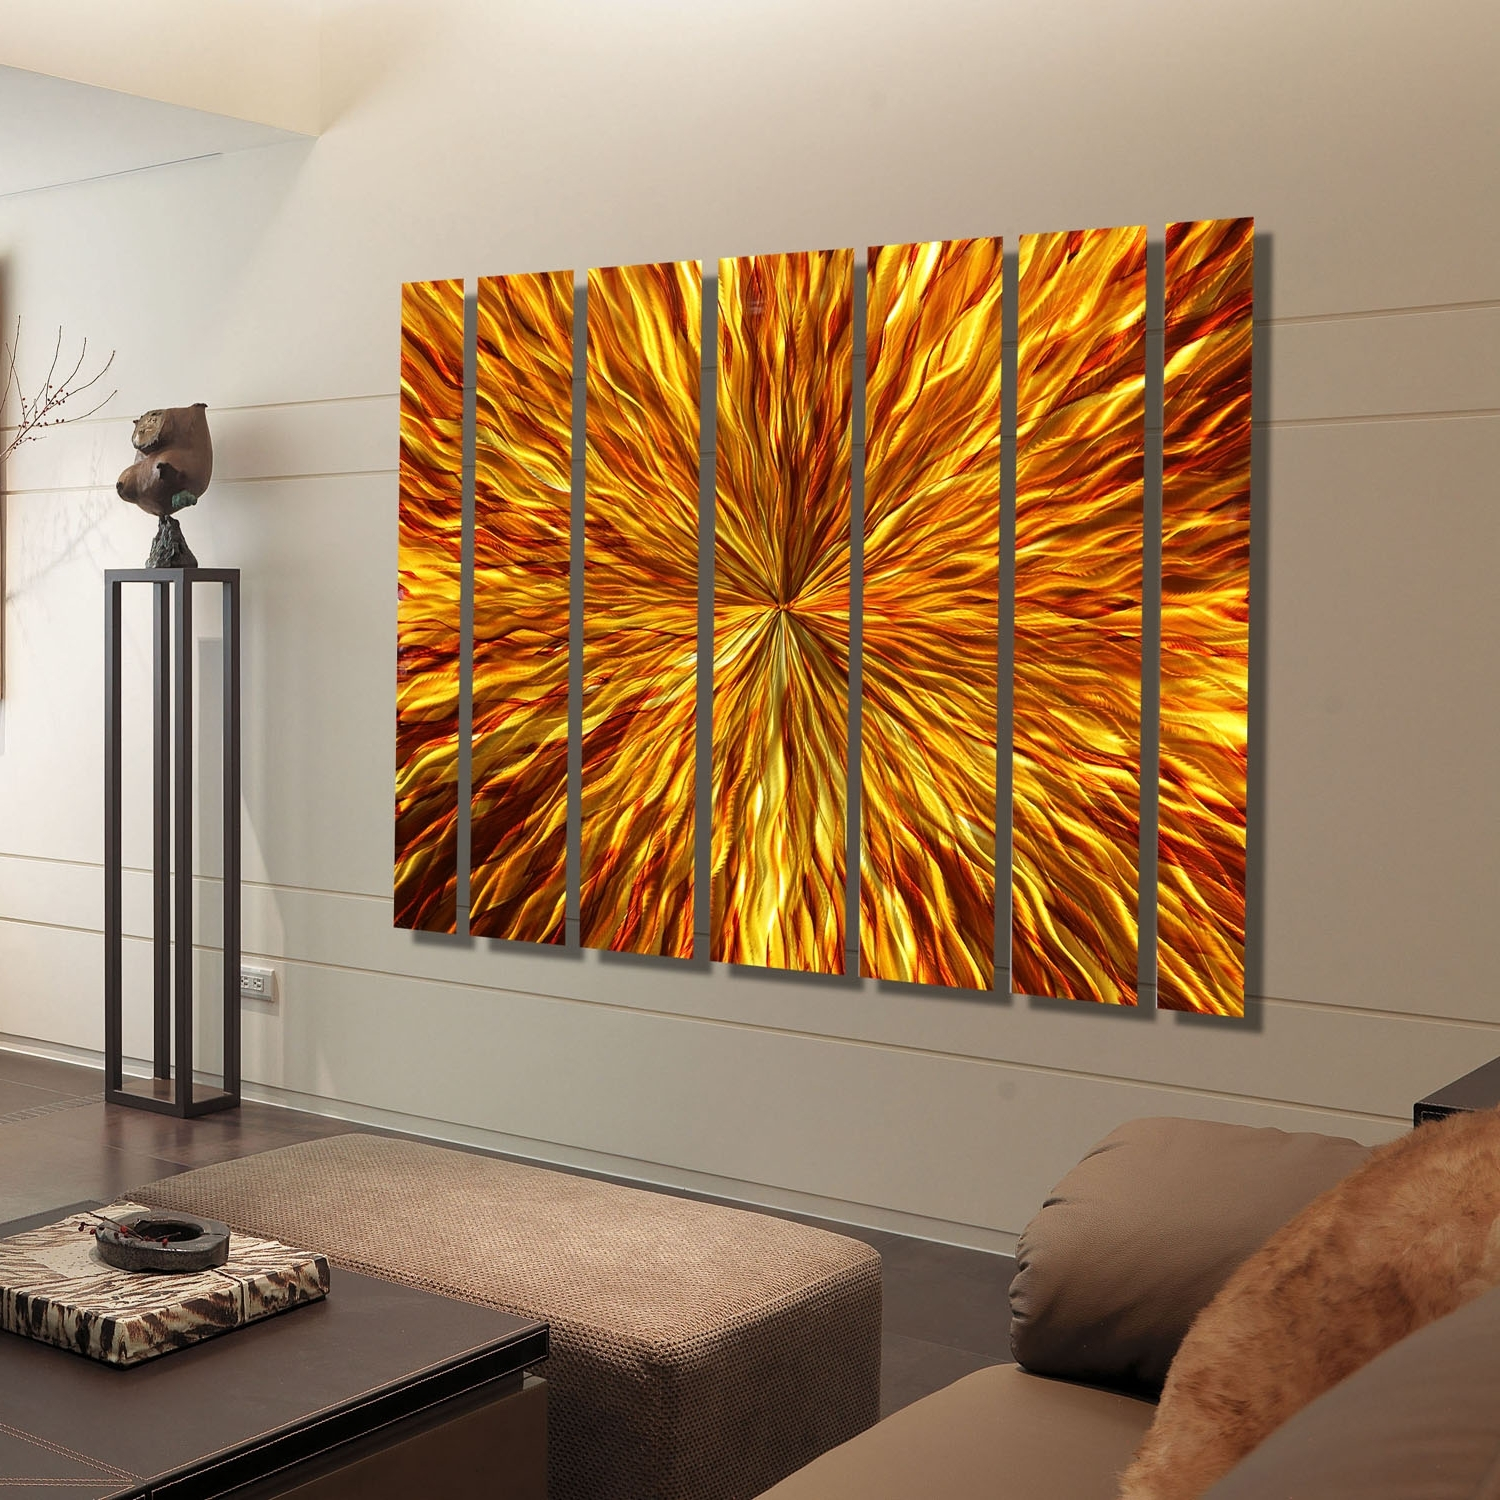 Large Abstract Metal Wall Art Regarding Most Current Home Decor: Wonderful Abstract Metal Wall Art And Amber Vortex Xl (View 2 of 15)